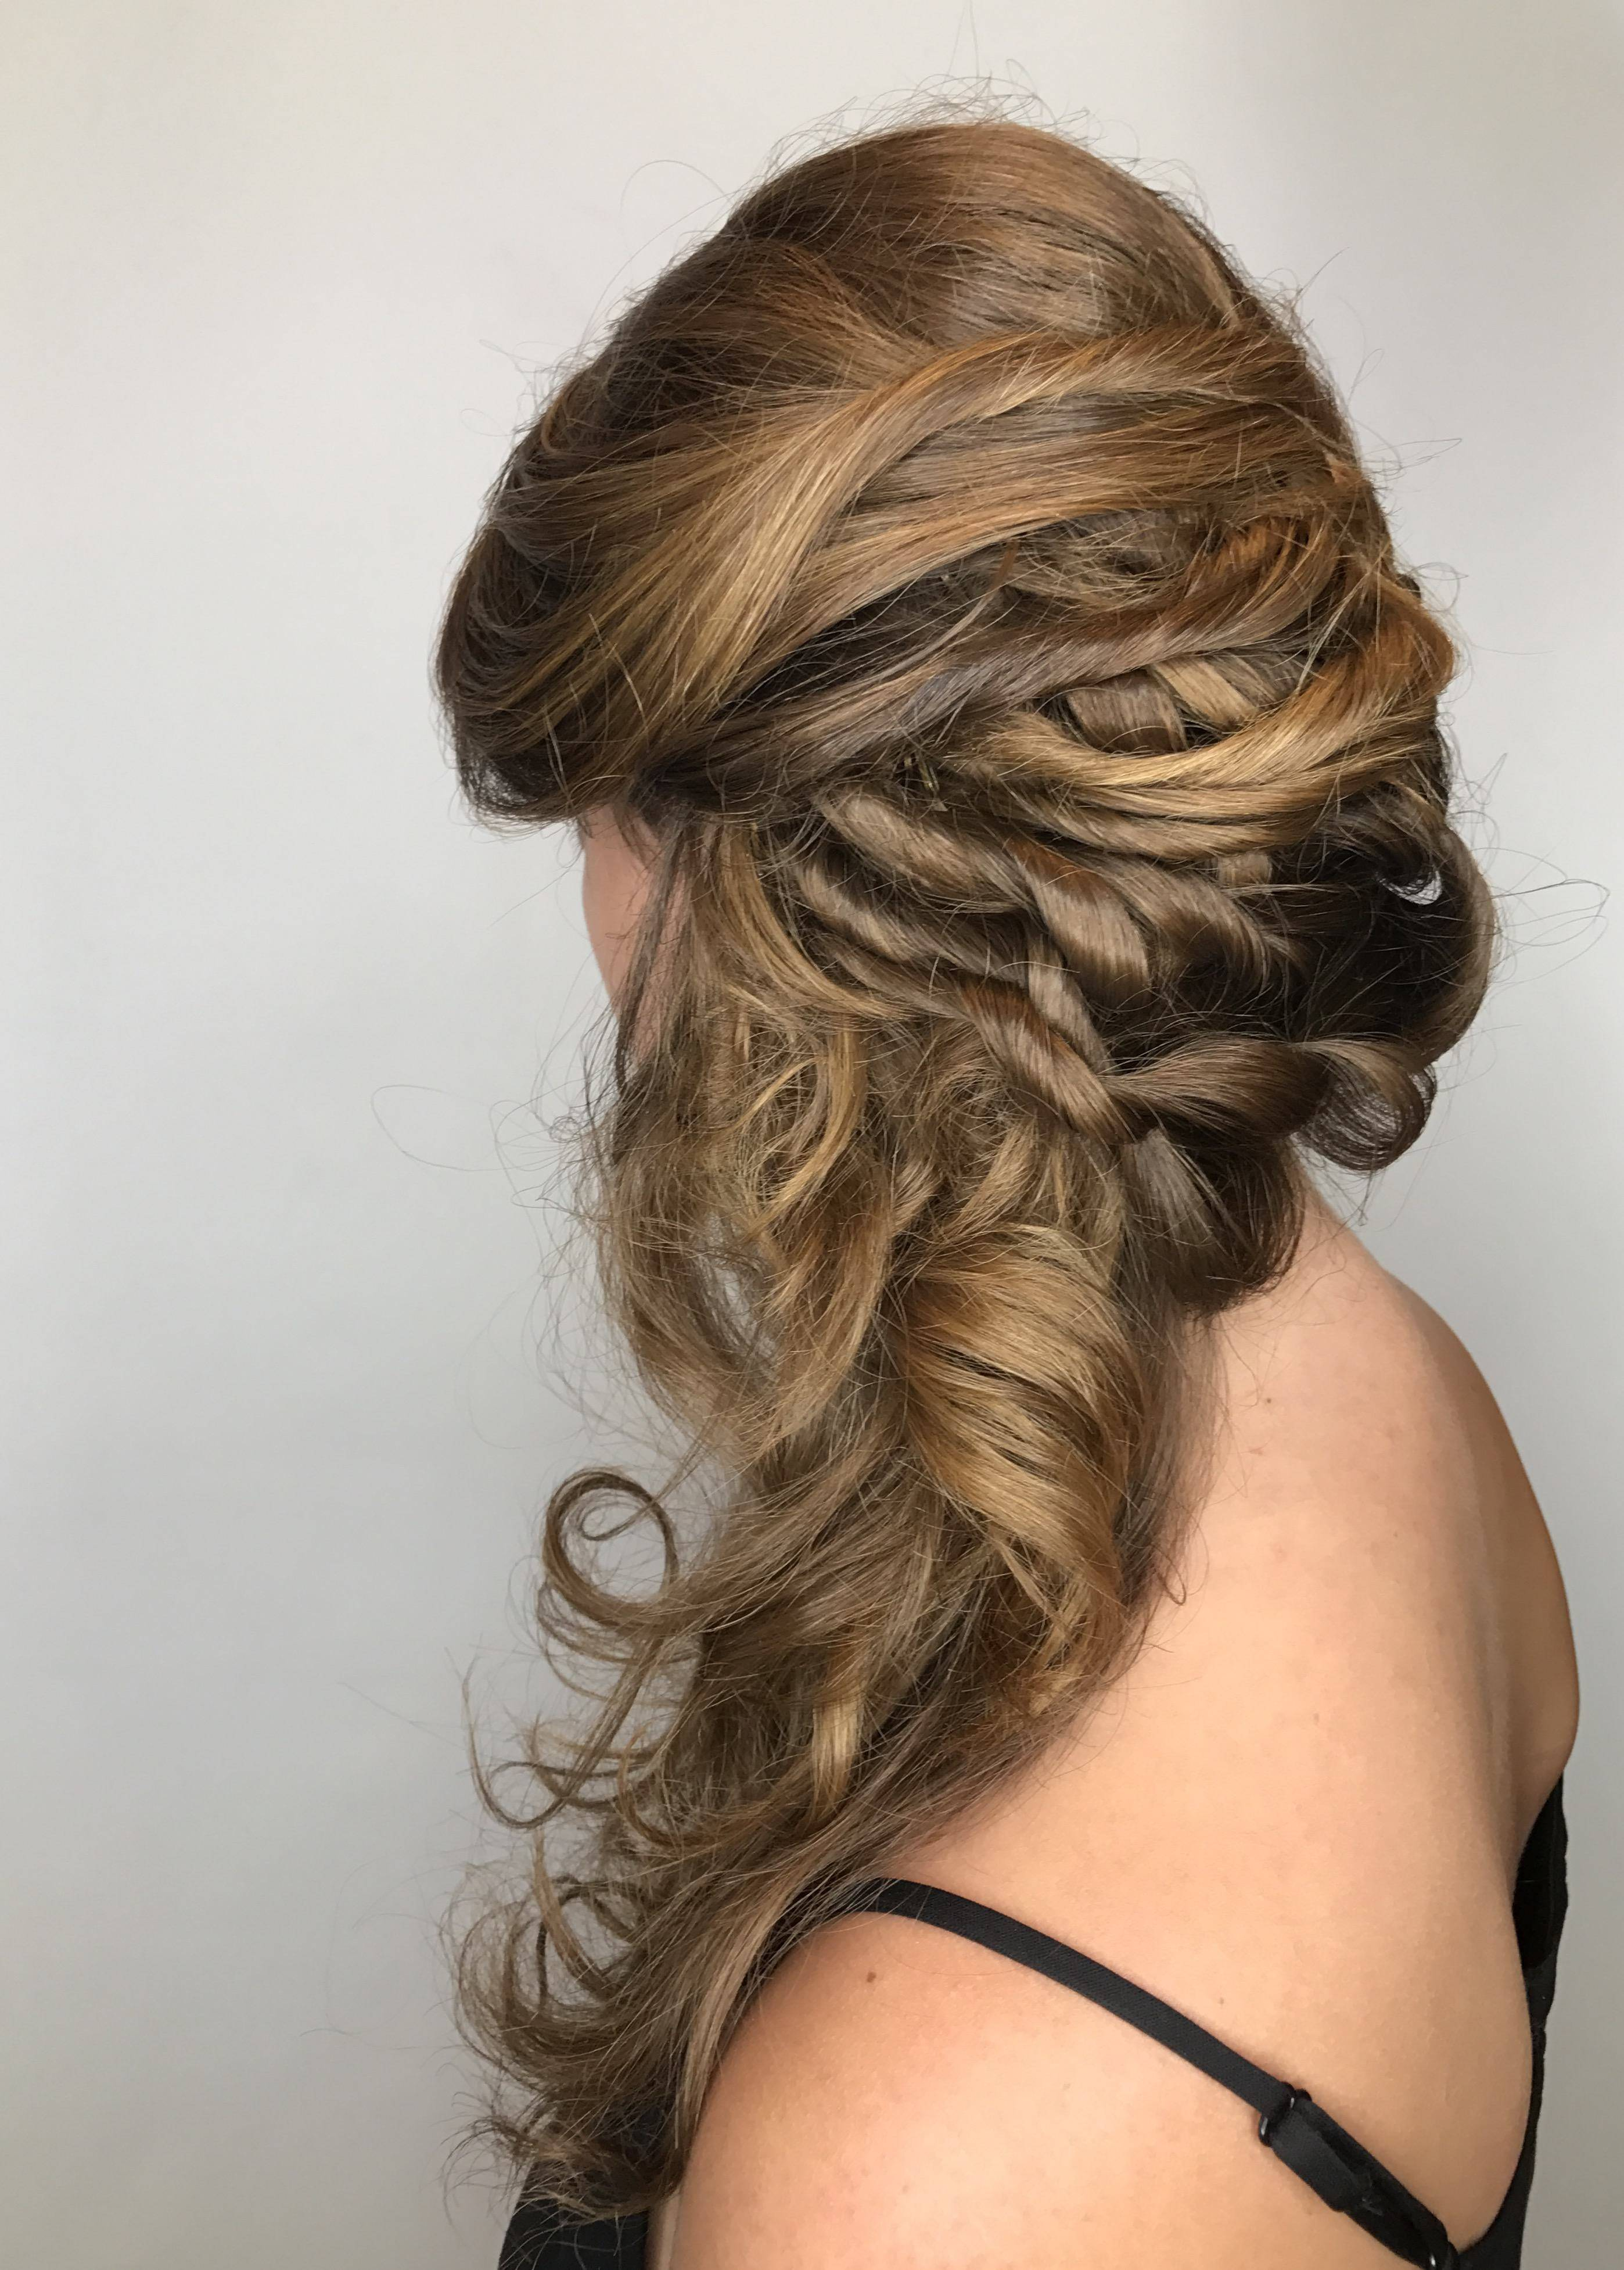 hair styling salon services